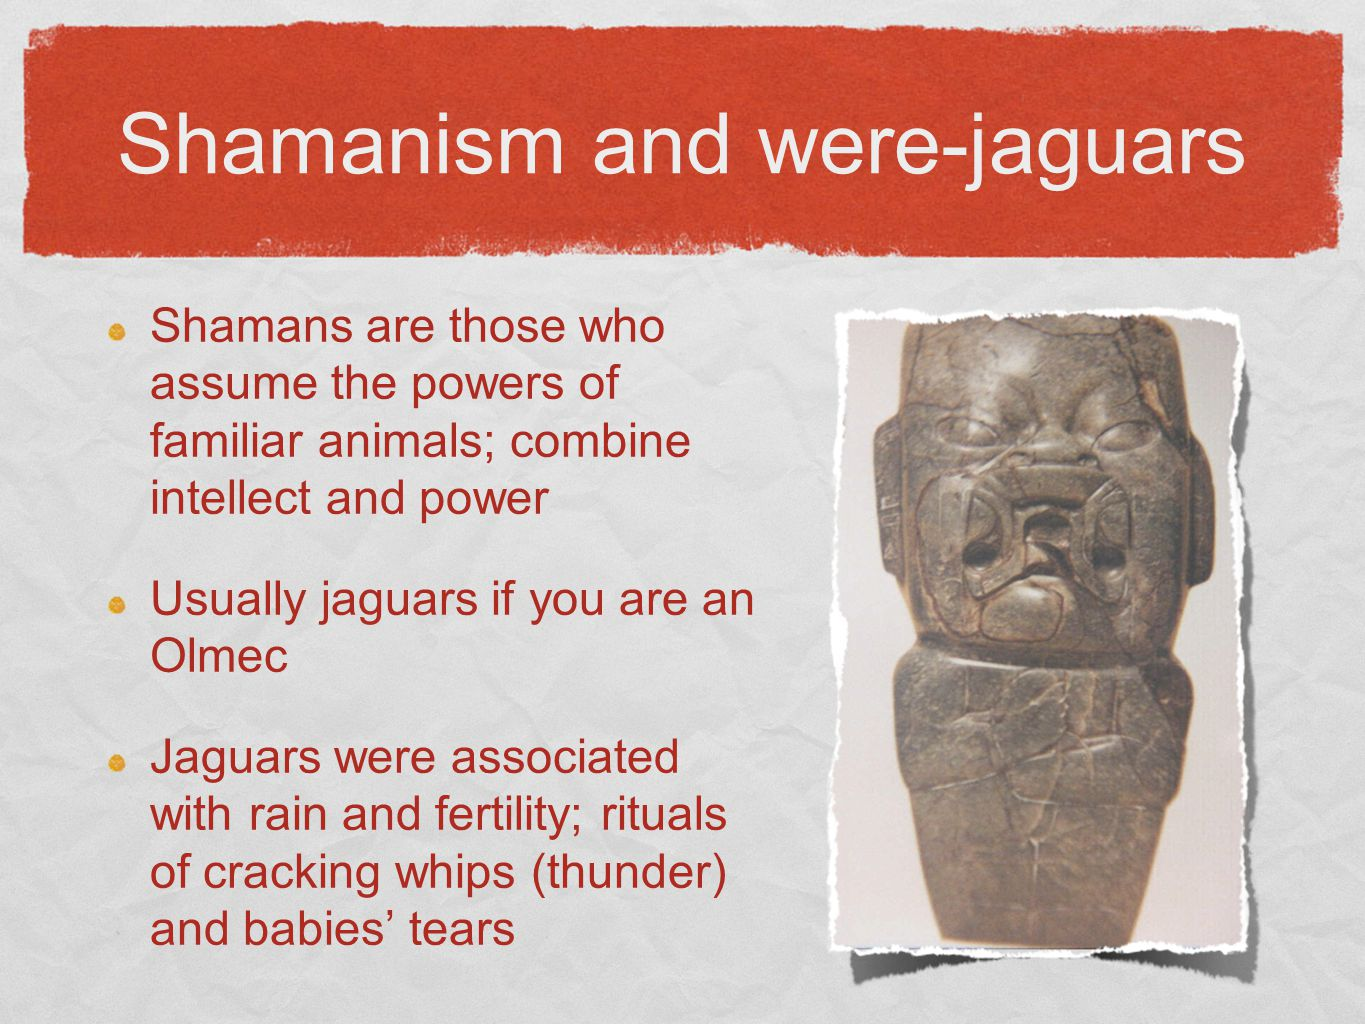 Shamanism and were-jaguars